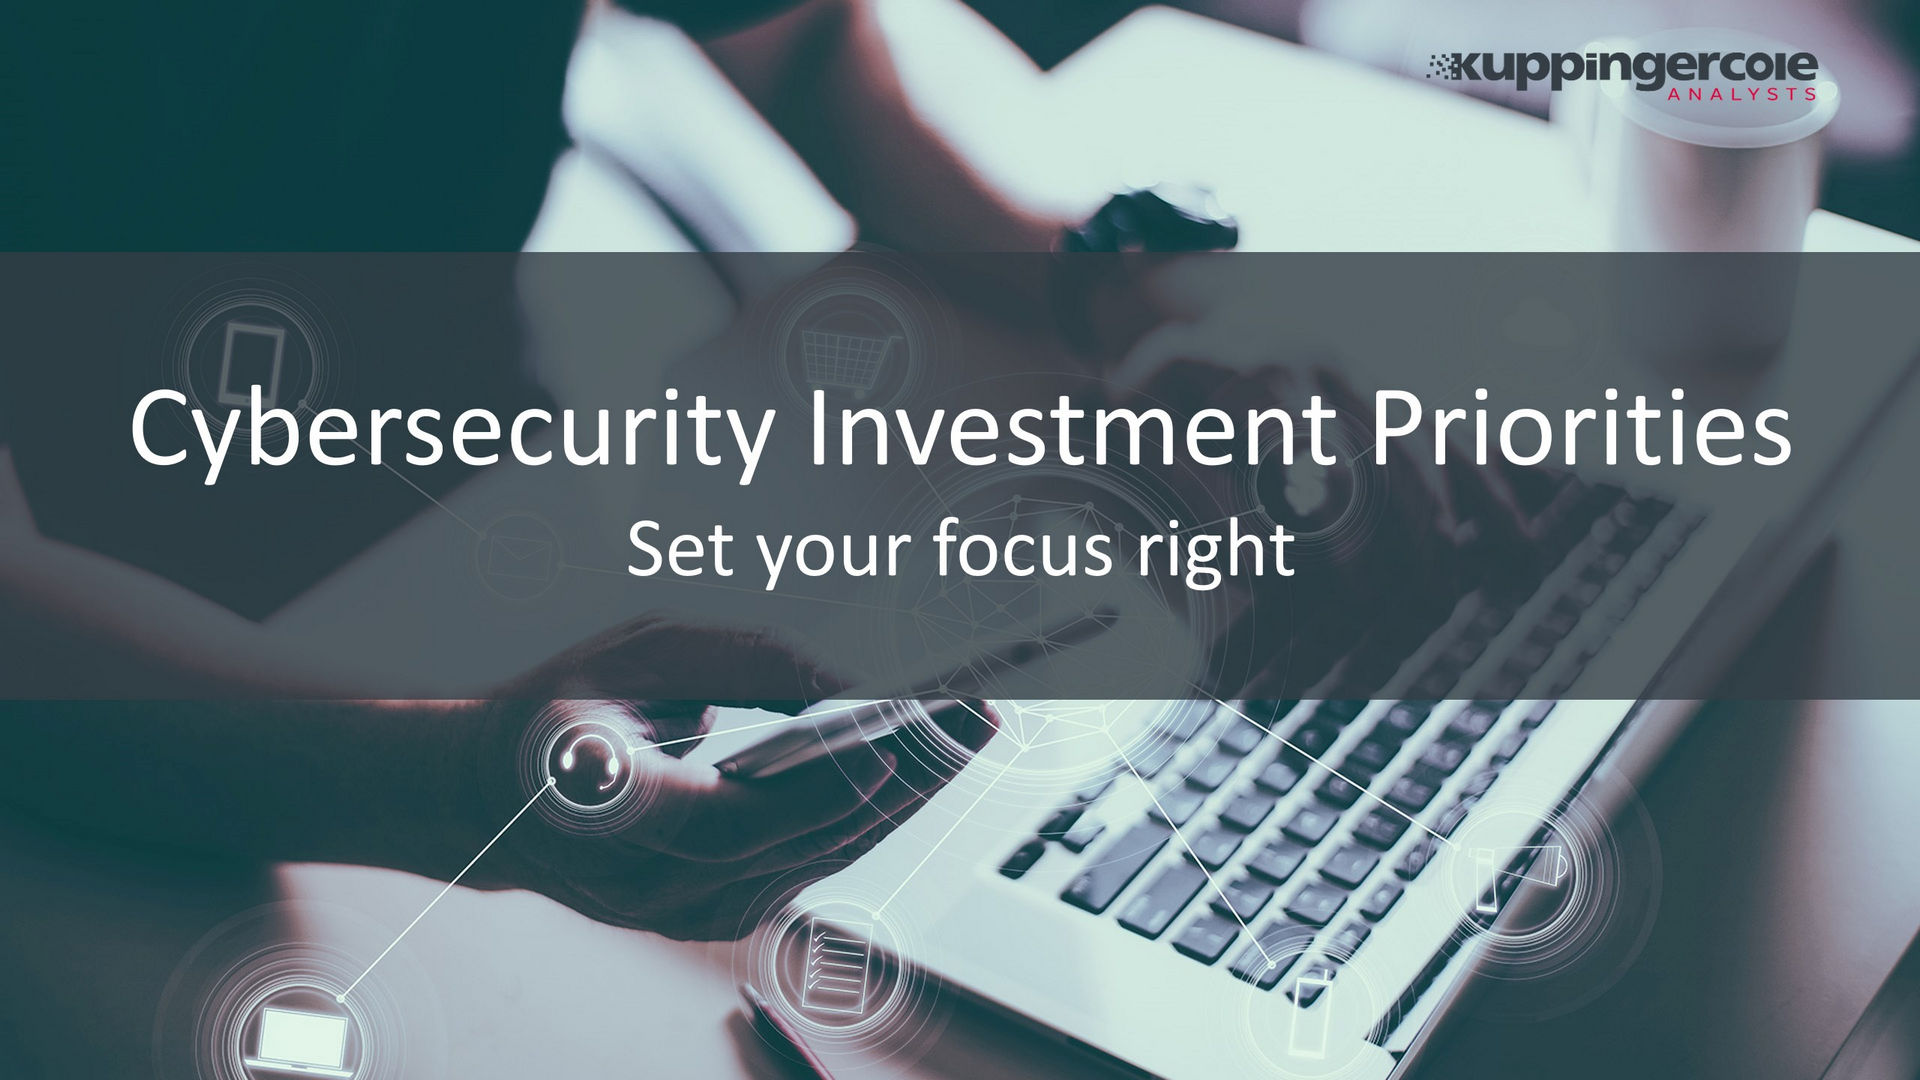 Cybersecurity Investment Priorities - Set Your Focus Right